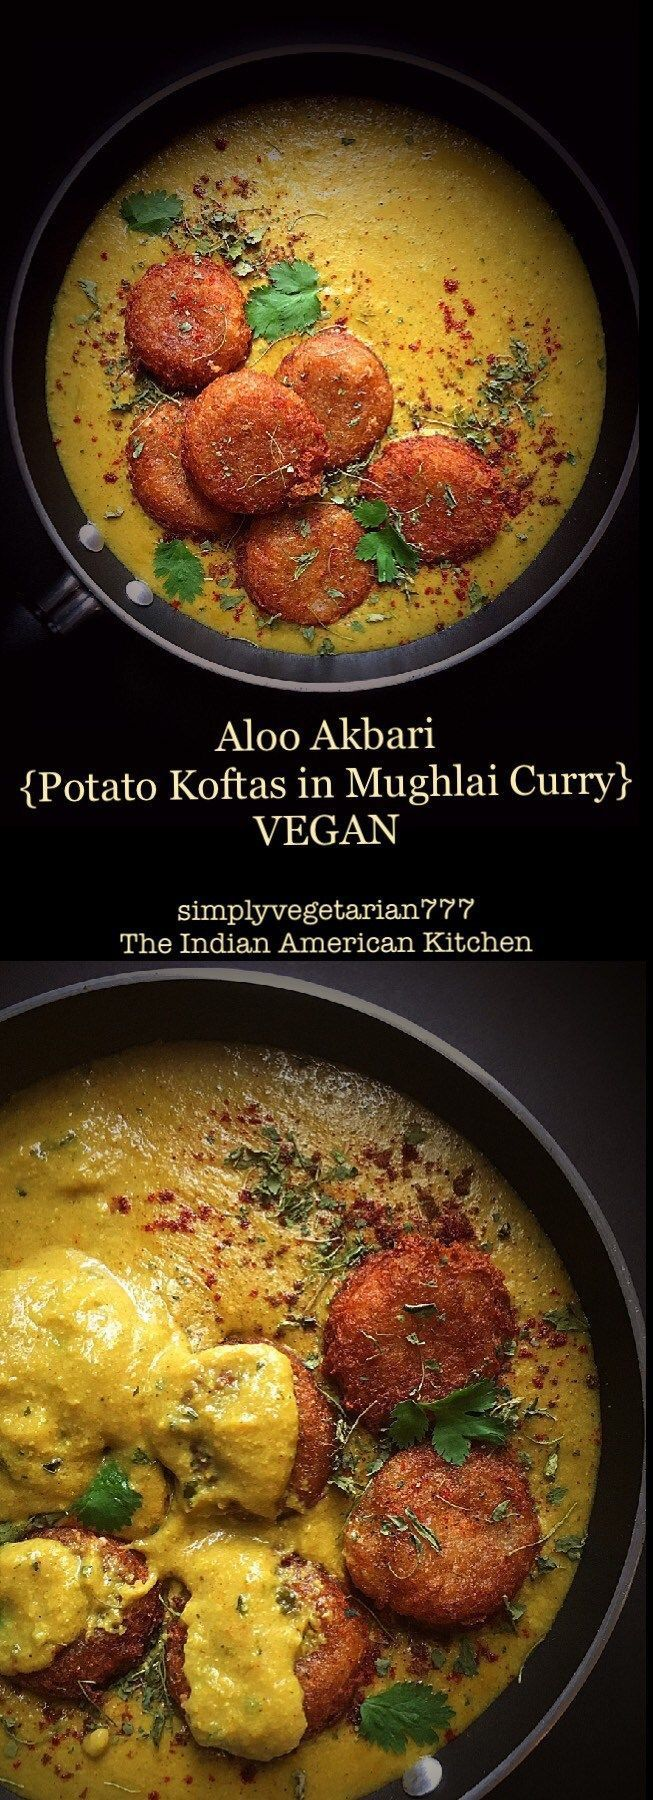 Aloo Akbari {Potatao Kofta in Vegan Mughlai Curry} is the Rich Indian ROYAL CURRY fit for the kings. The best part is that it is vegan and has been tried and tested by many.